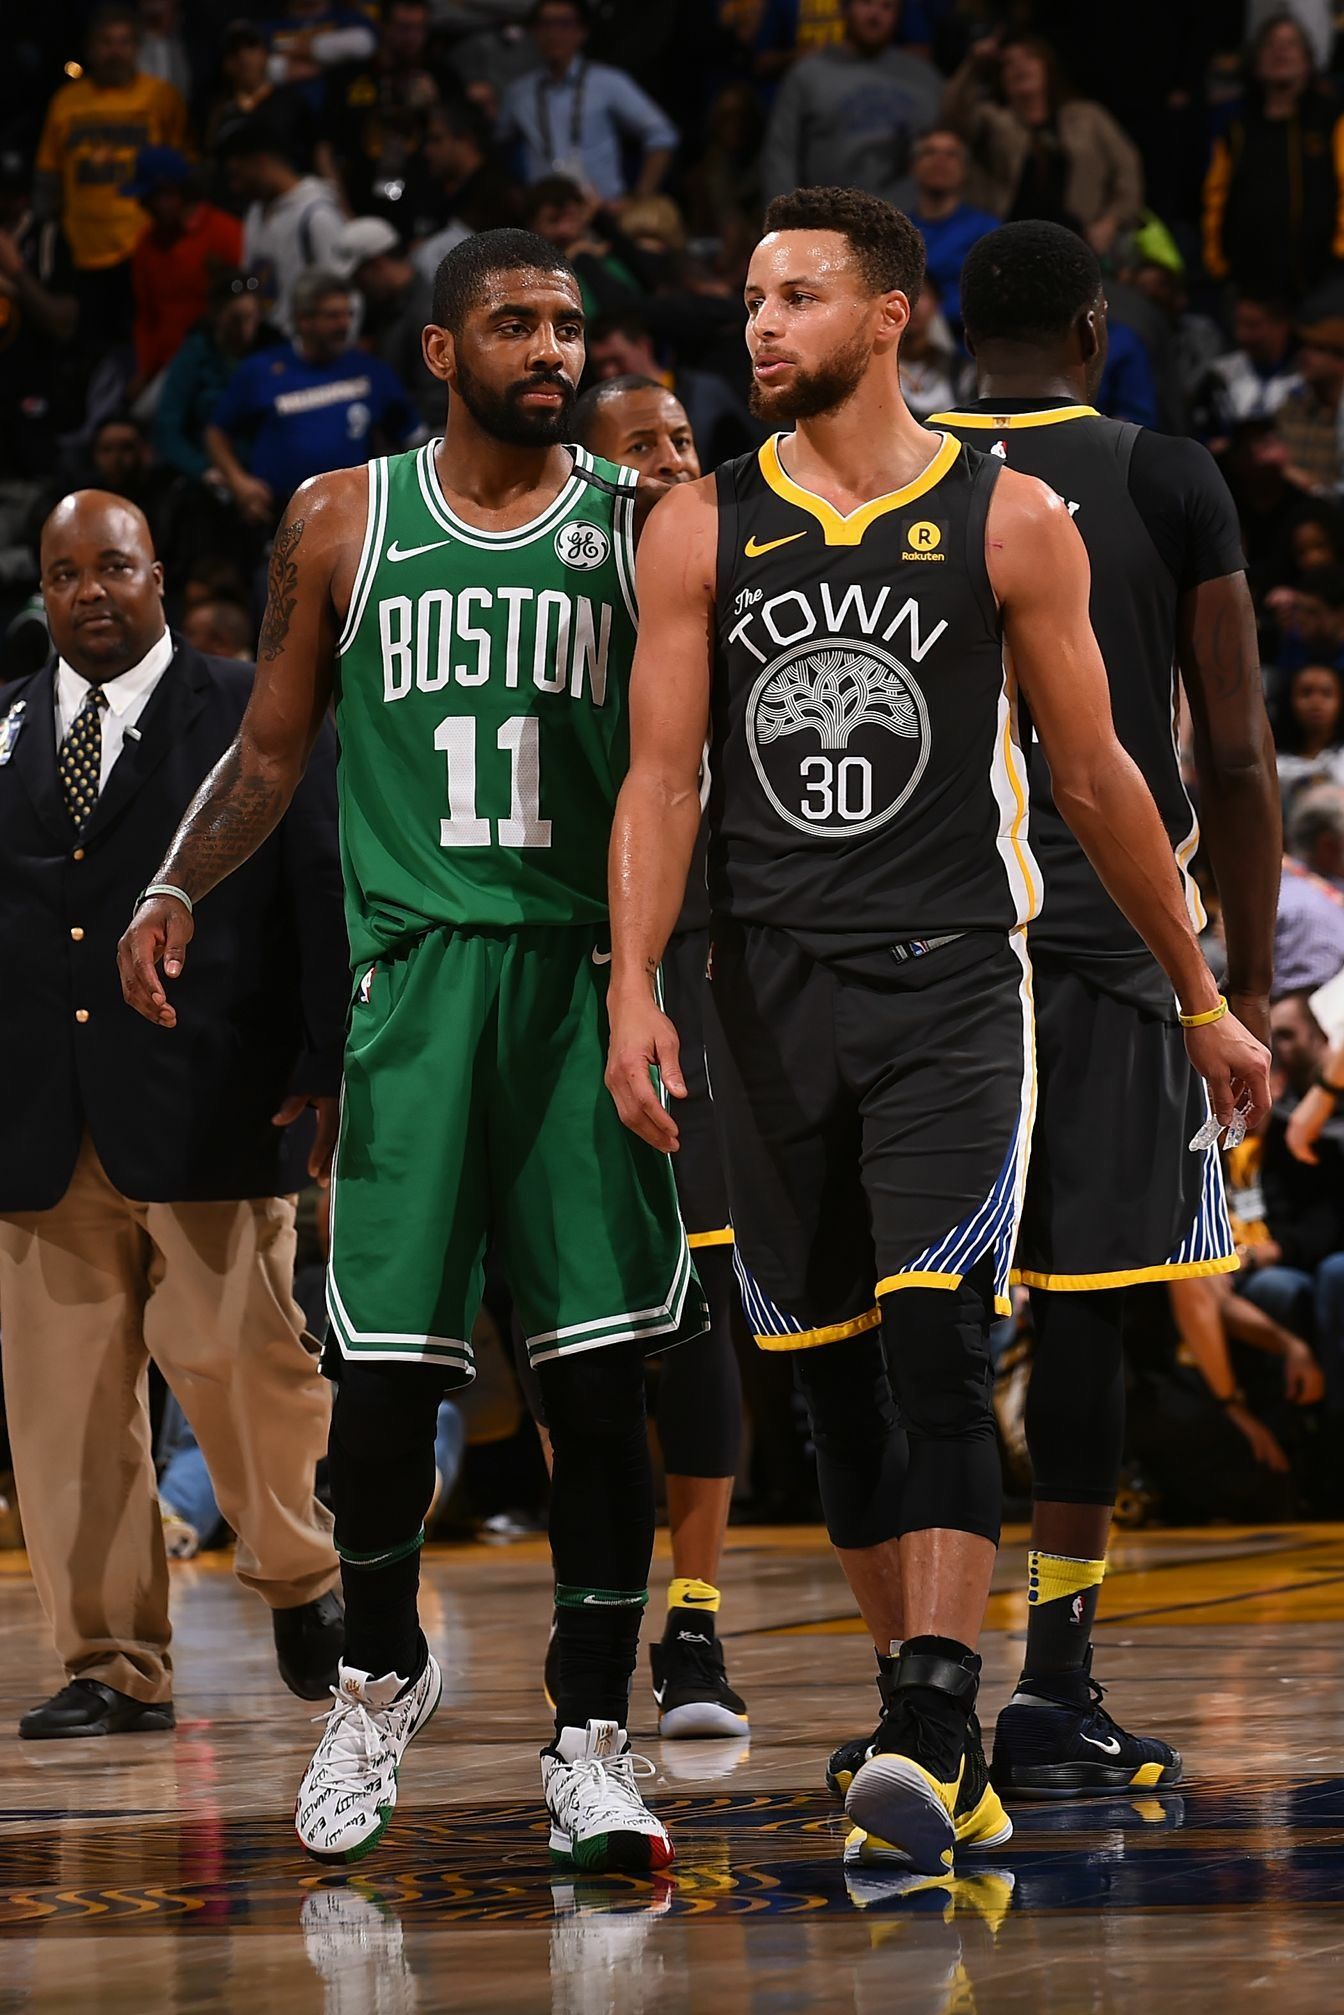 fb39d770d1d Kyrie Irving - Boston Celtics and Stephen Curry